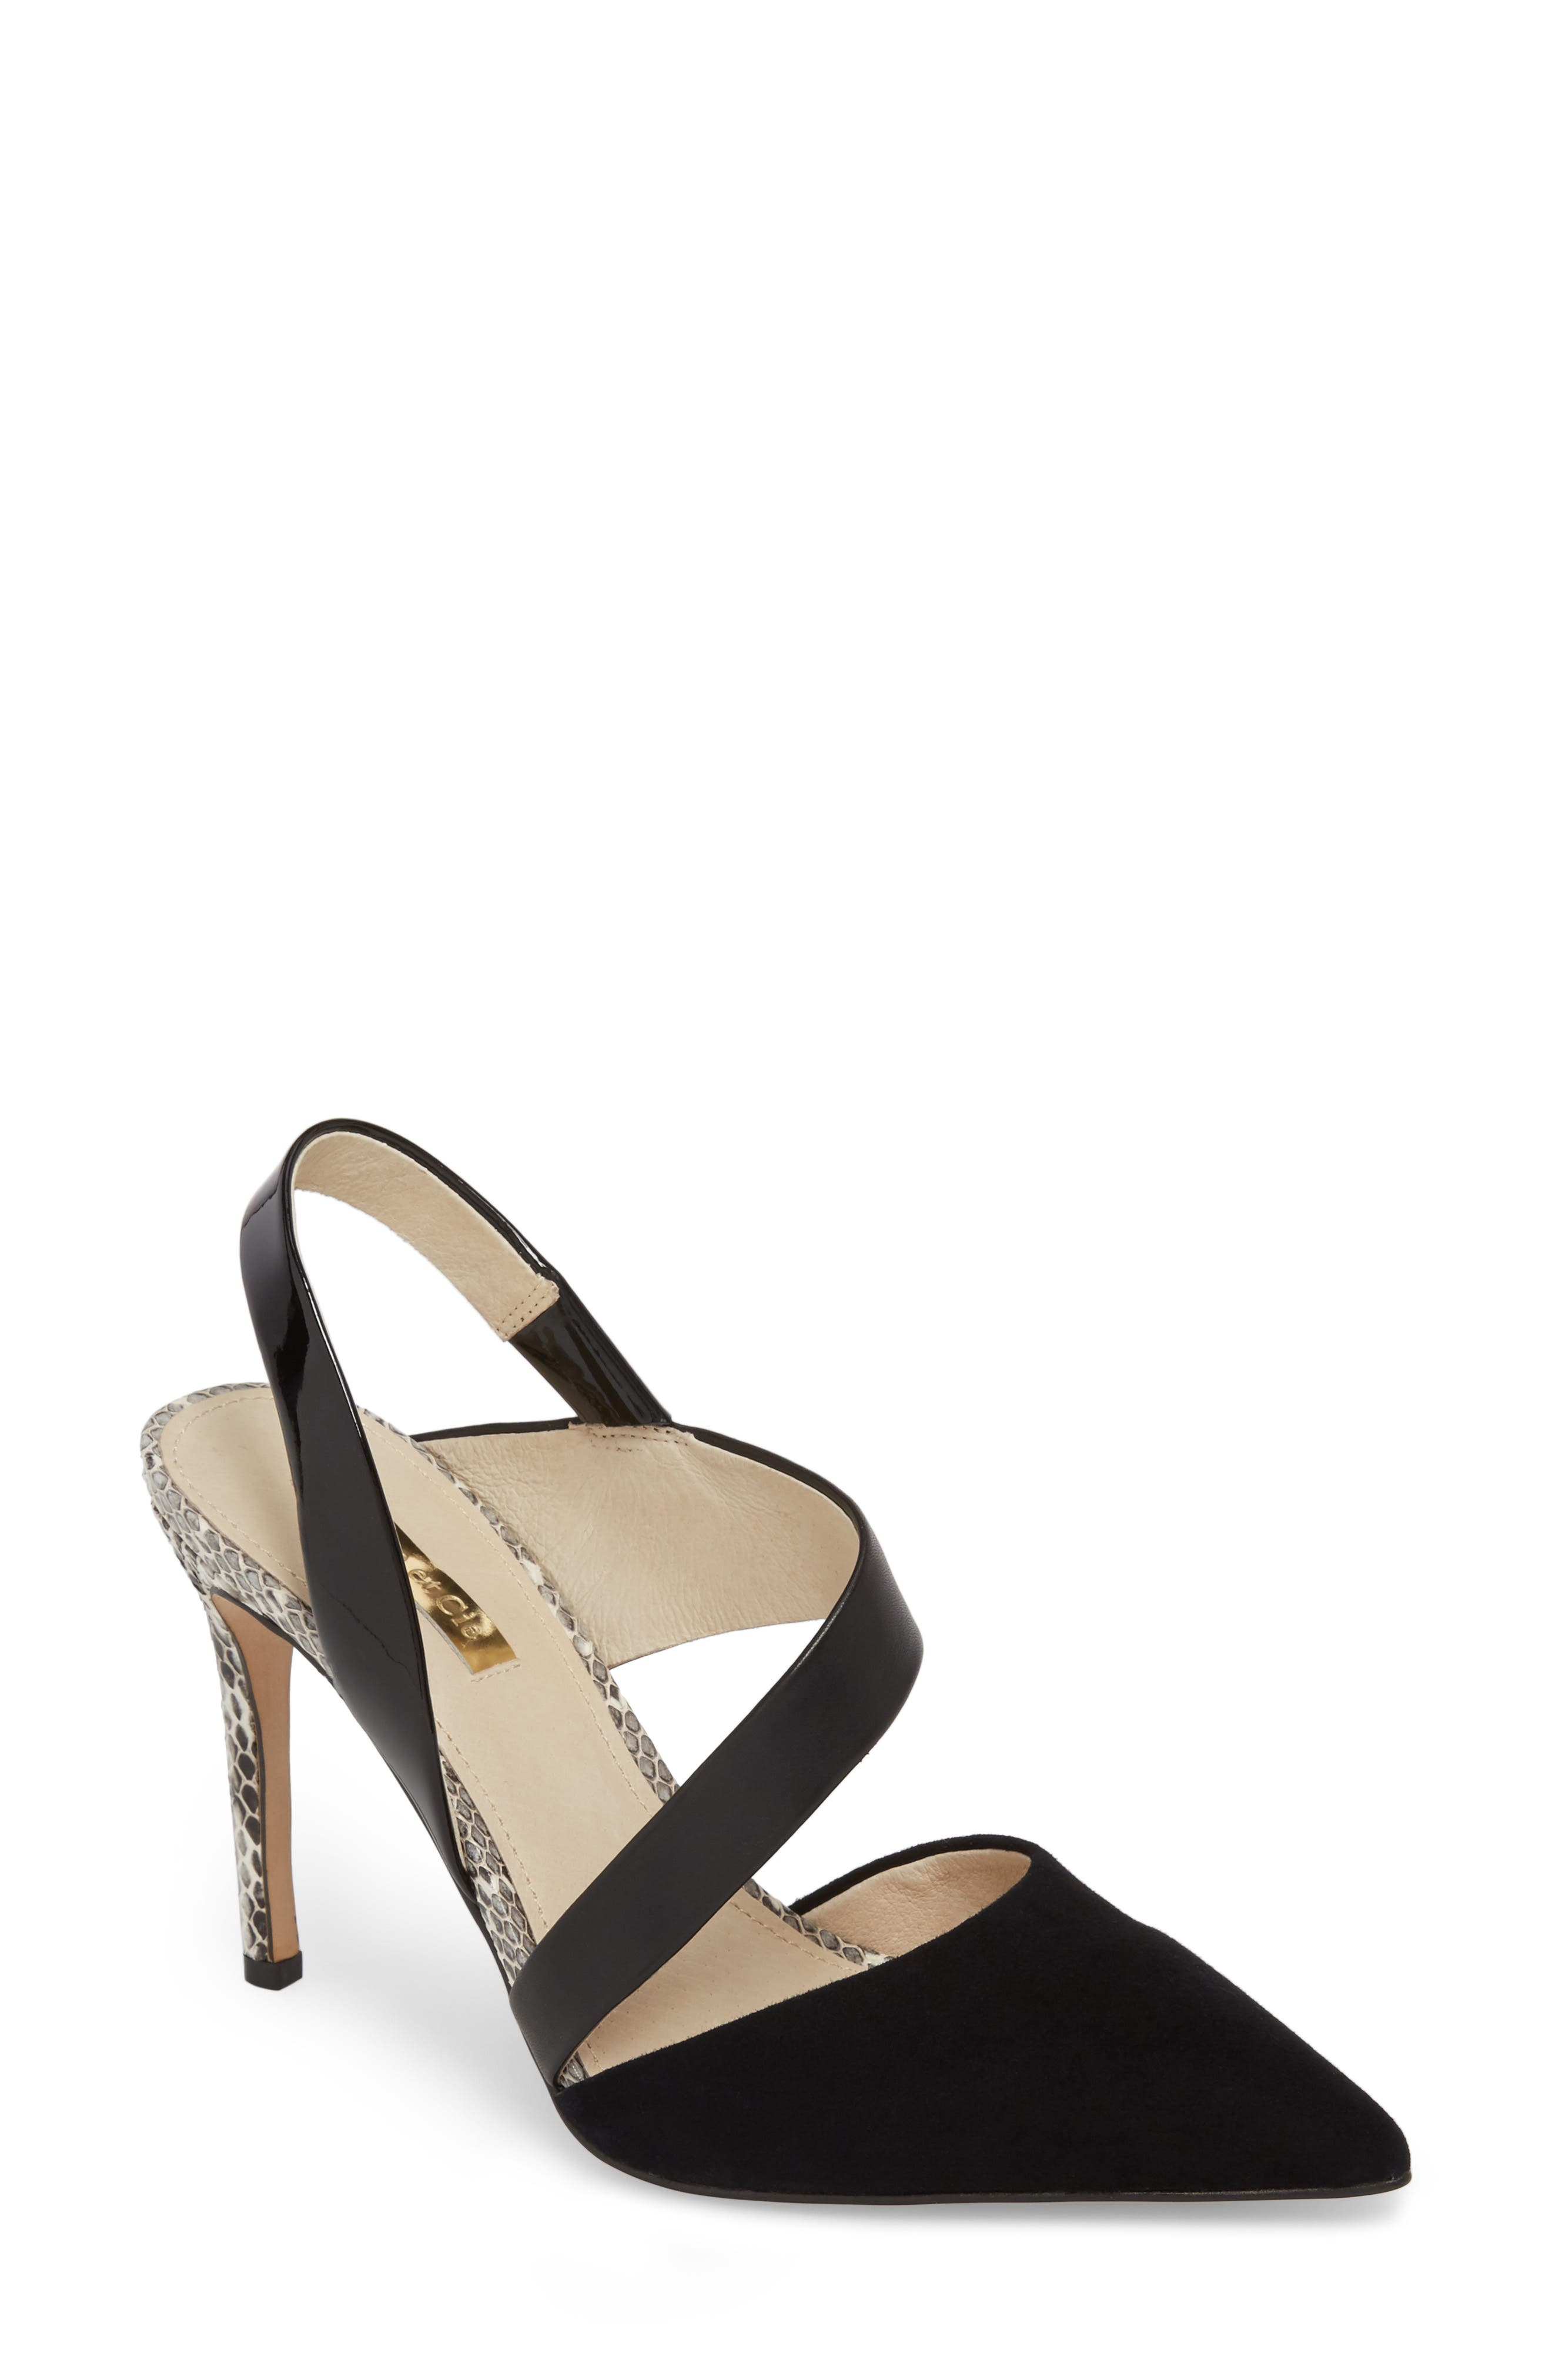 Jerry Pointy Toe Slingback Pump,                             Main thumbnail 1, color,                             Black Suede